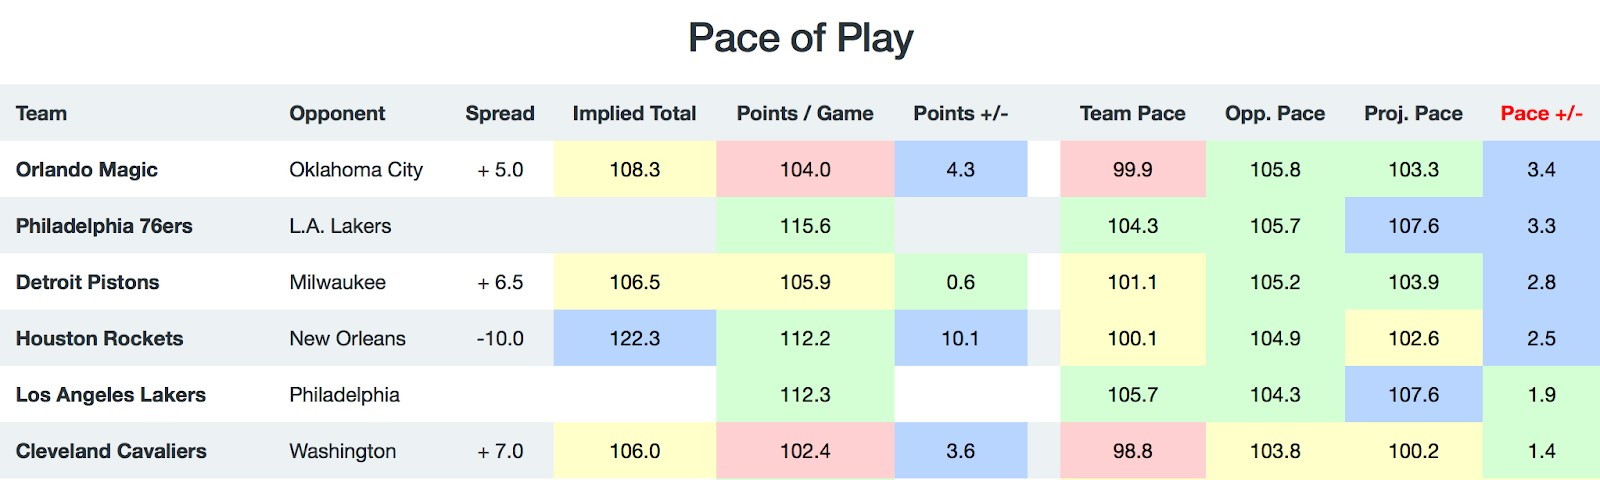 NBA Pace of Play